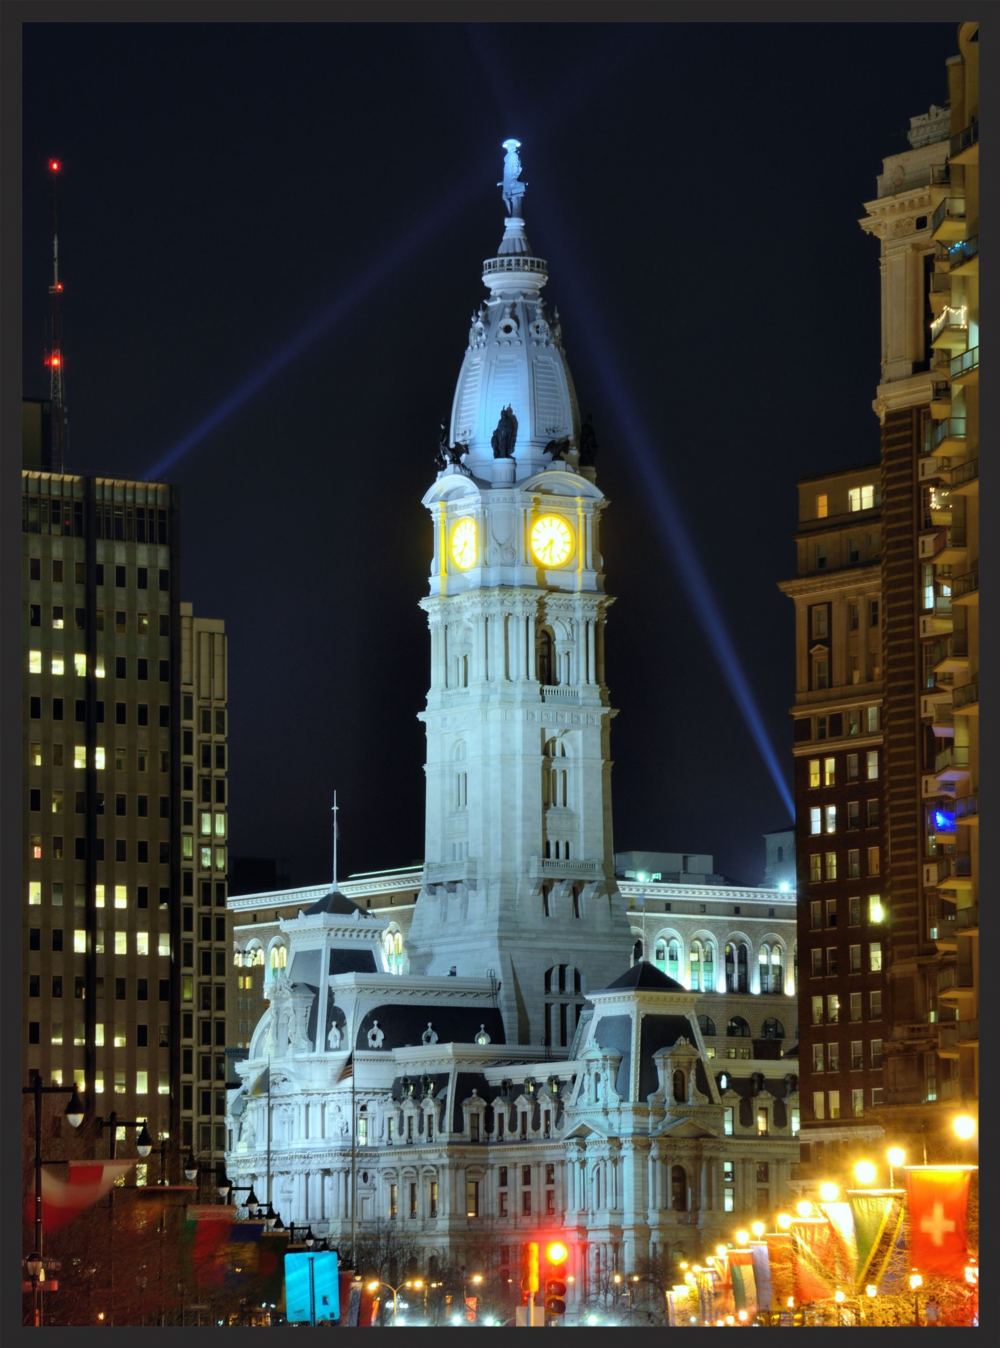 Philadelphia's gorgeously appointed City Hall is topped with a famous statue of William Penn.